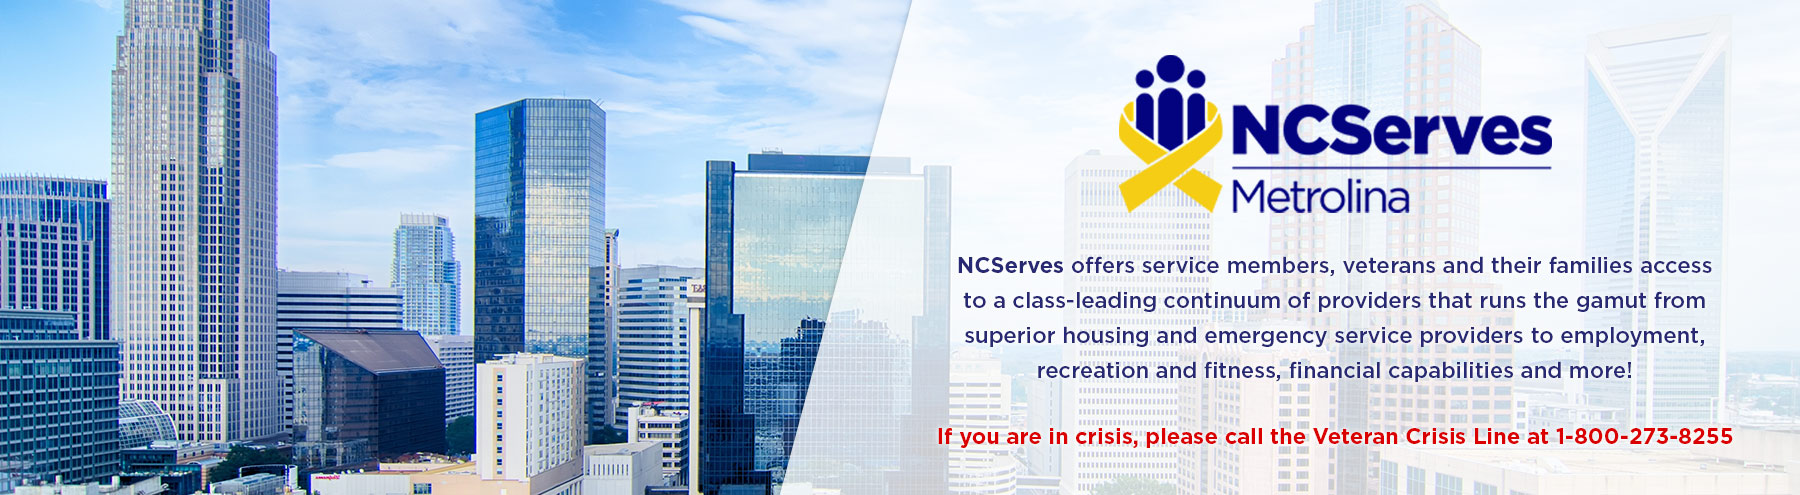 If you are in crisis, please call the Veteran Crisis Line at 1-800-272-8255.  NCServes - Metrolina offers service members, veterans and their families access to a class-leading continuum of providers that runs the gamut from superior housing and emergency service providers to employment, recreation and fitness, financial capabilities and more!